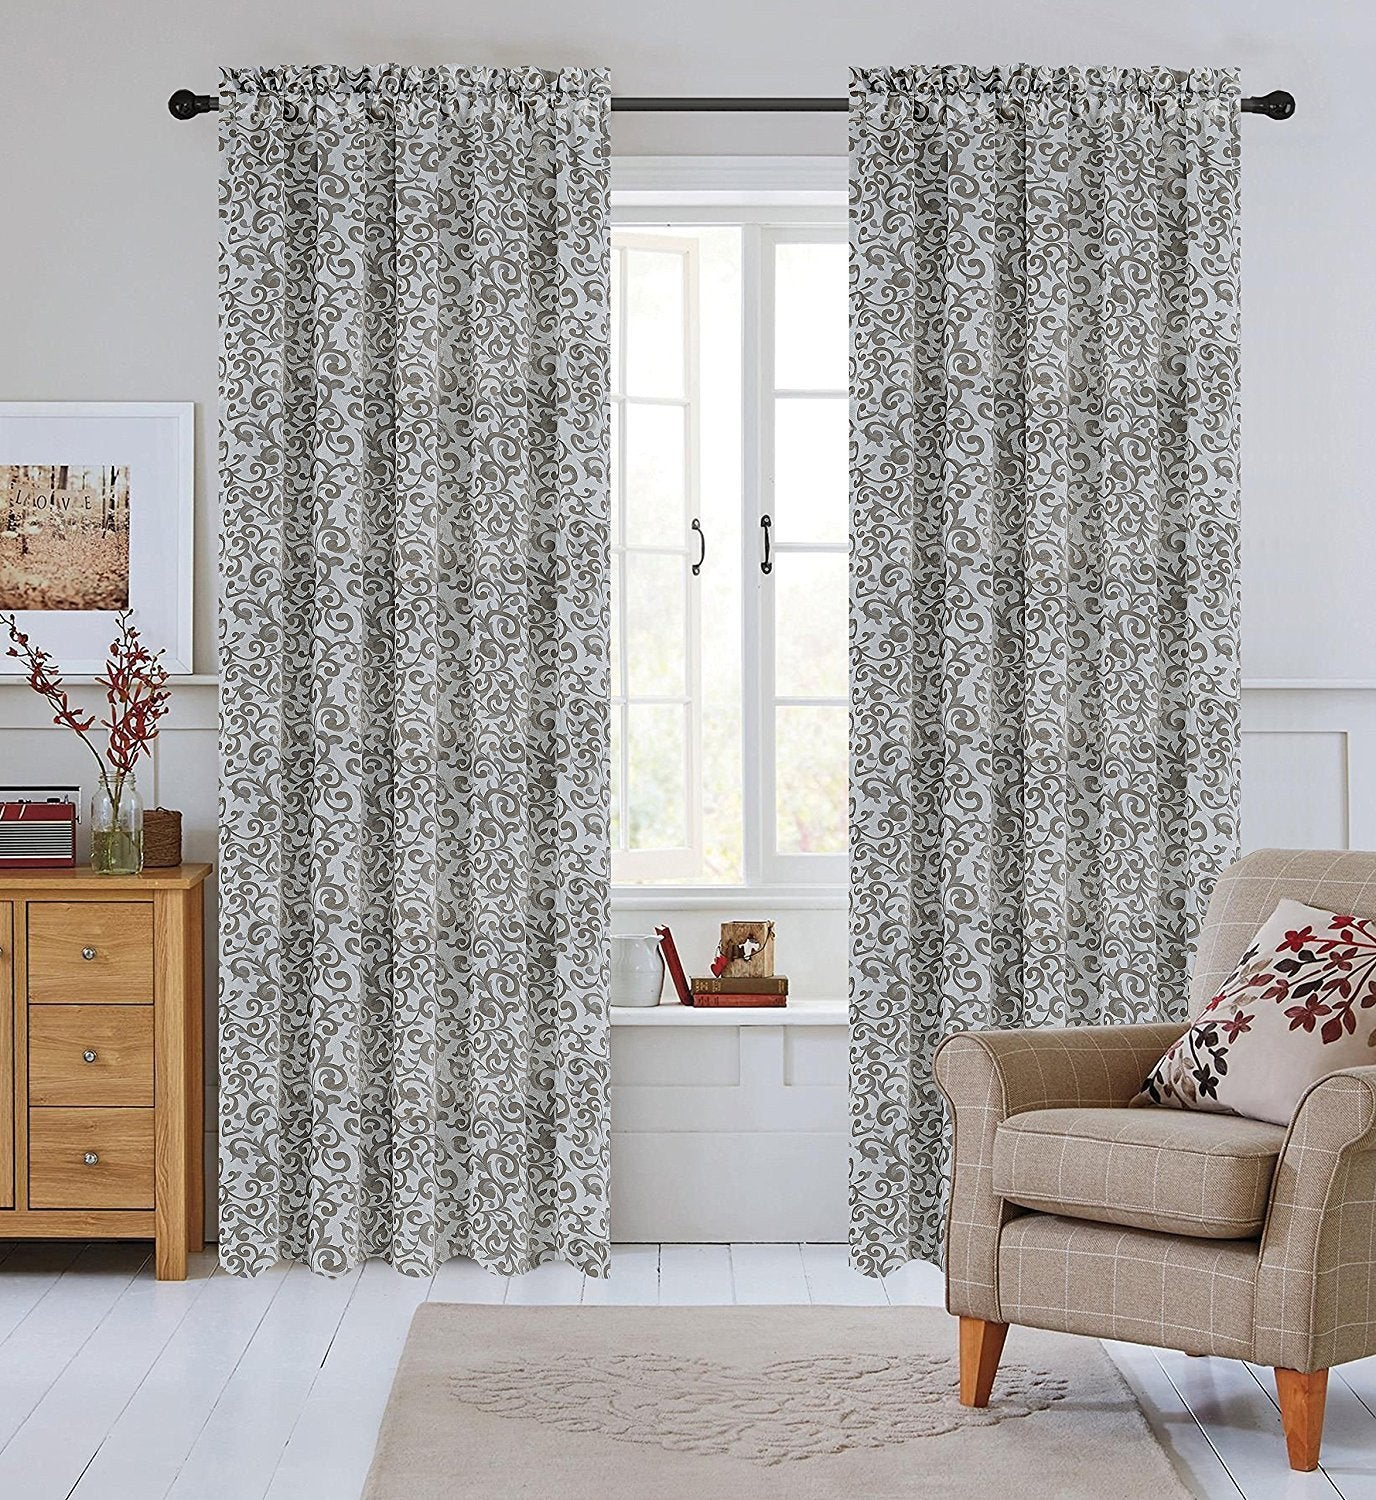 Set of 2 Jacquard Scroll Drapery Curtain Panel - 4 Colors